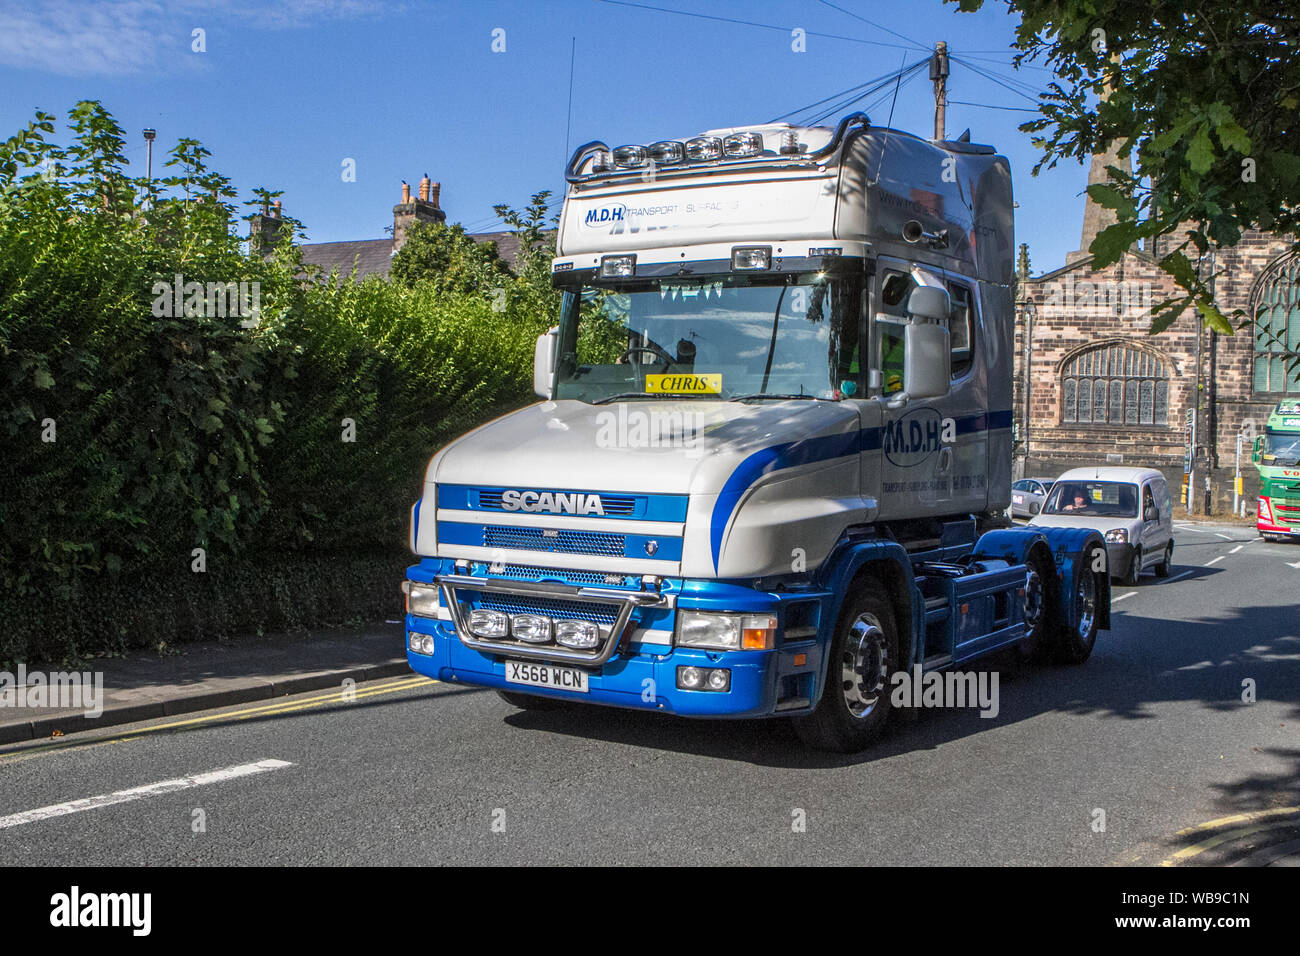 Scania Cab Stock Photos & Scania Cab Stock Images - Alamy